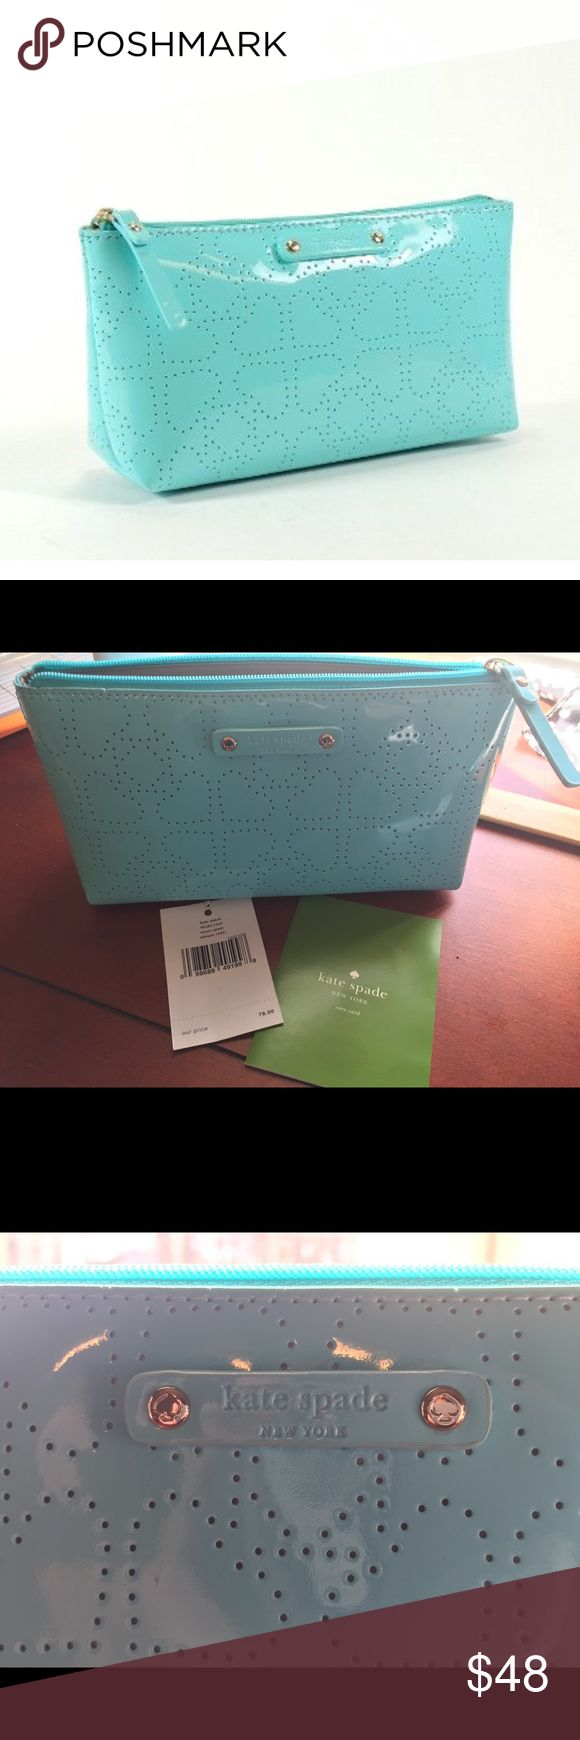 """Kate Spade Little Shiloh Metro Spade Adriatic Features Zip closure Perforated patent leather 7"""" x 4"""" x 2.5"""" zip-top closure 14-karat light gold hardware Solid nylon lining with slip pocket kate spade Bags Cosmetic Bags & Cases"""